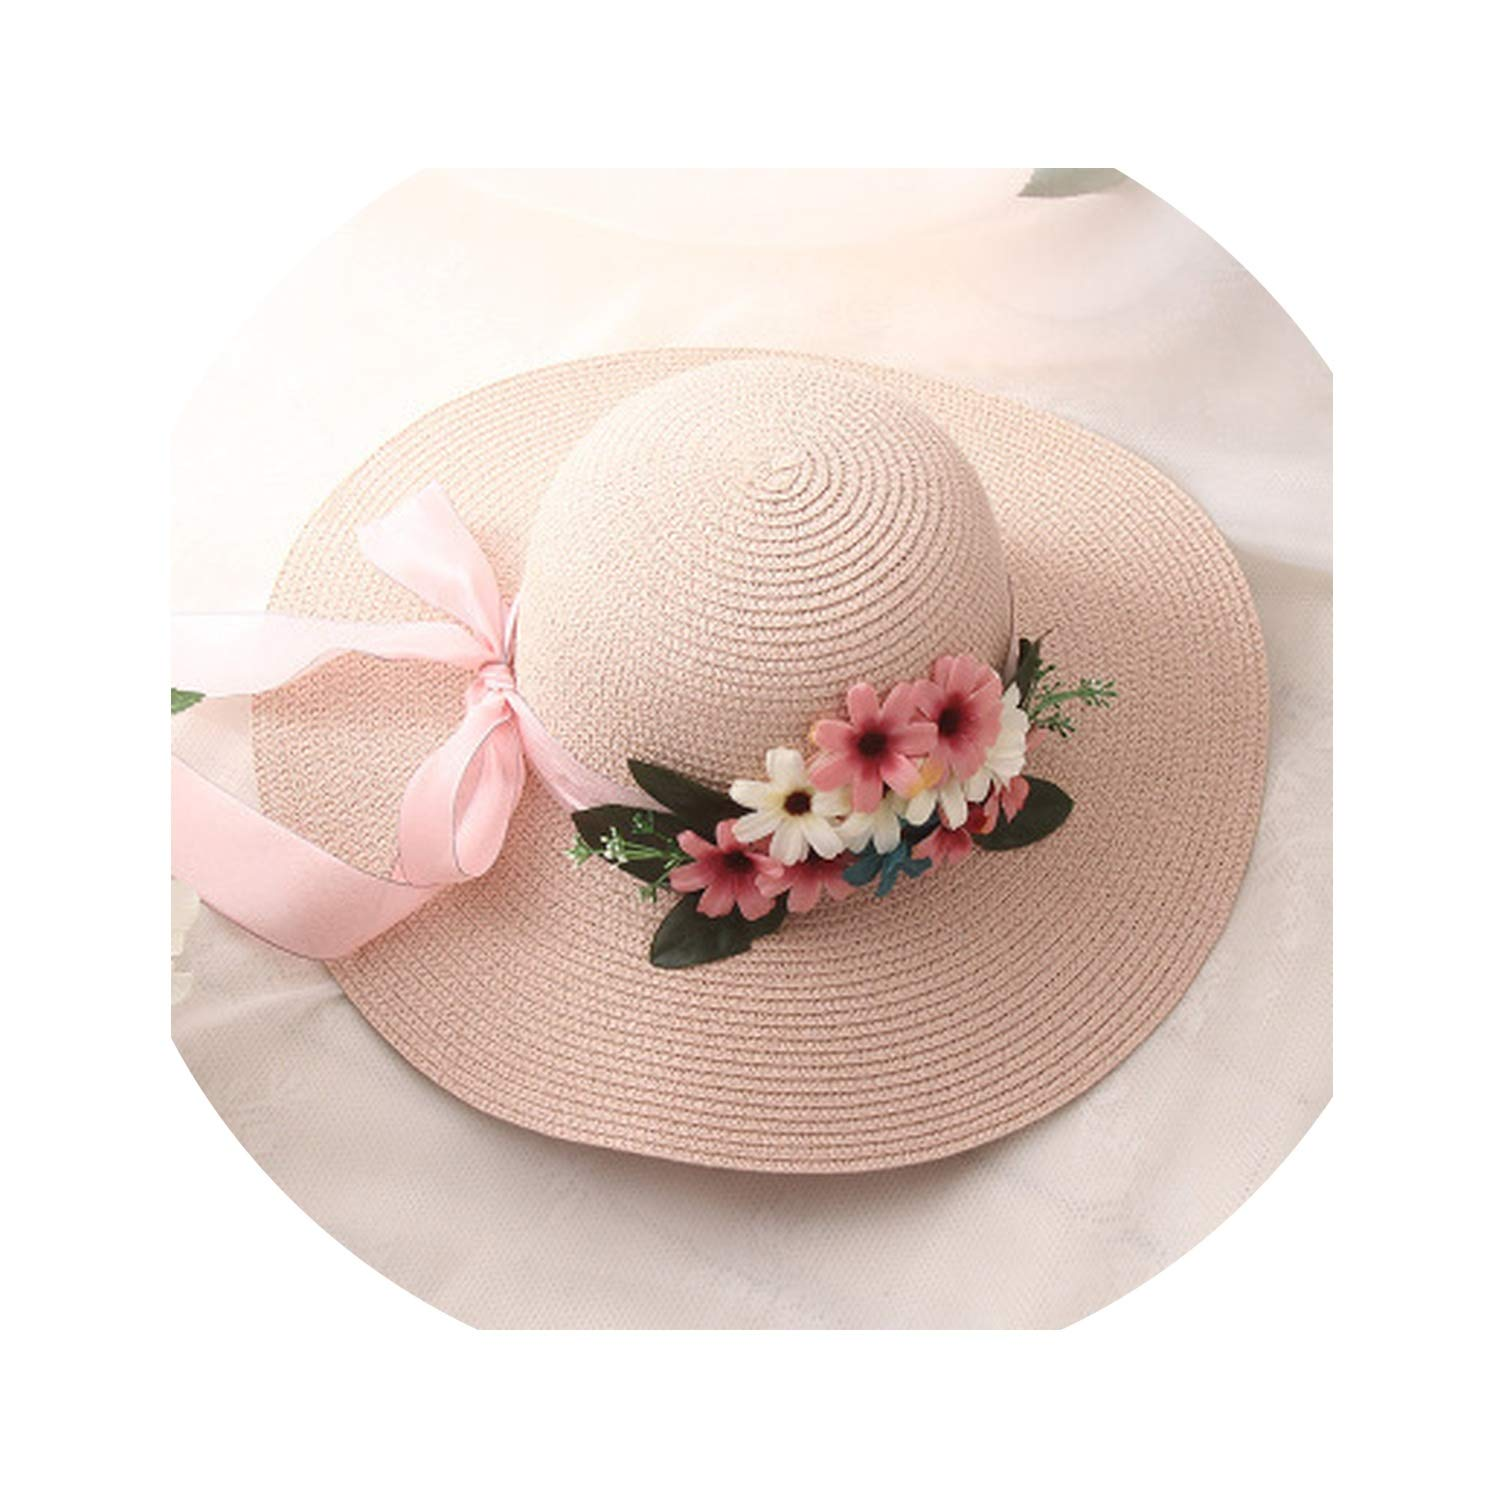 Double Flowers Weave Straw Hat Fashion Wide Brim Summer Hats Women Outdoor Beach Hat Floral Bow Hat